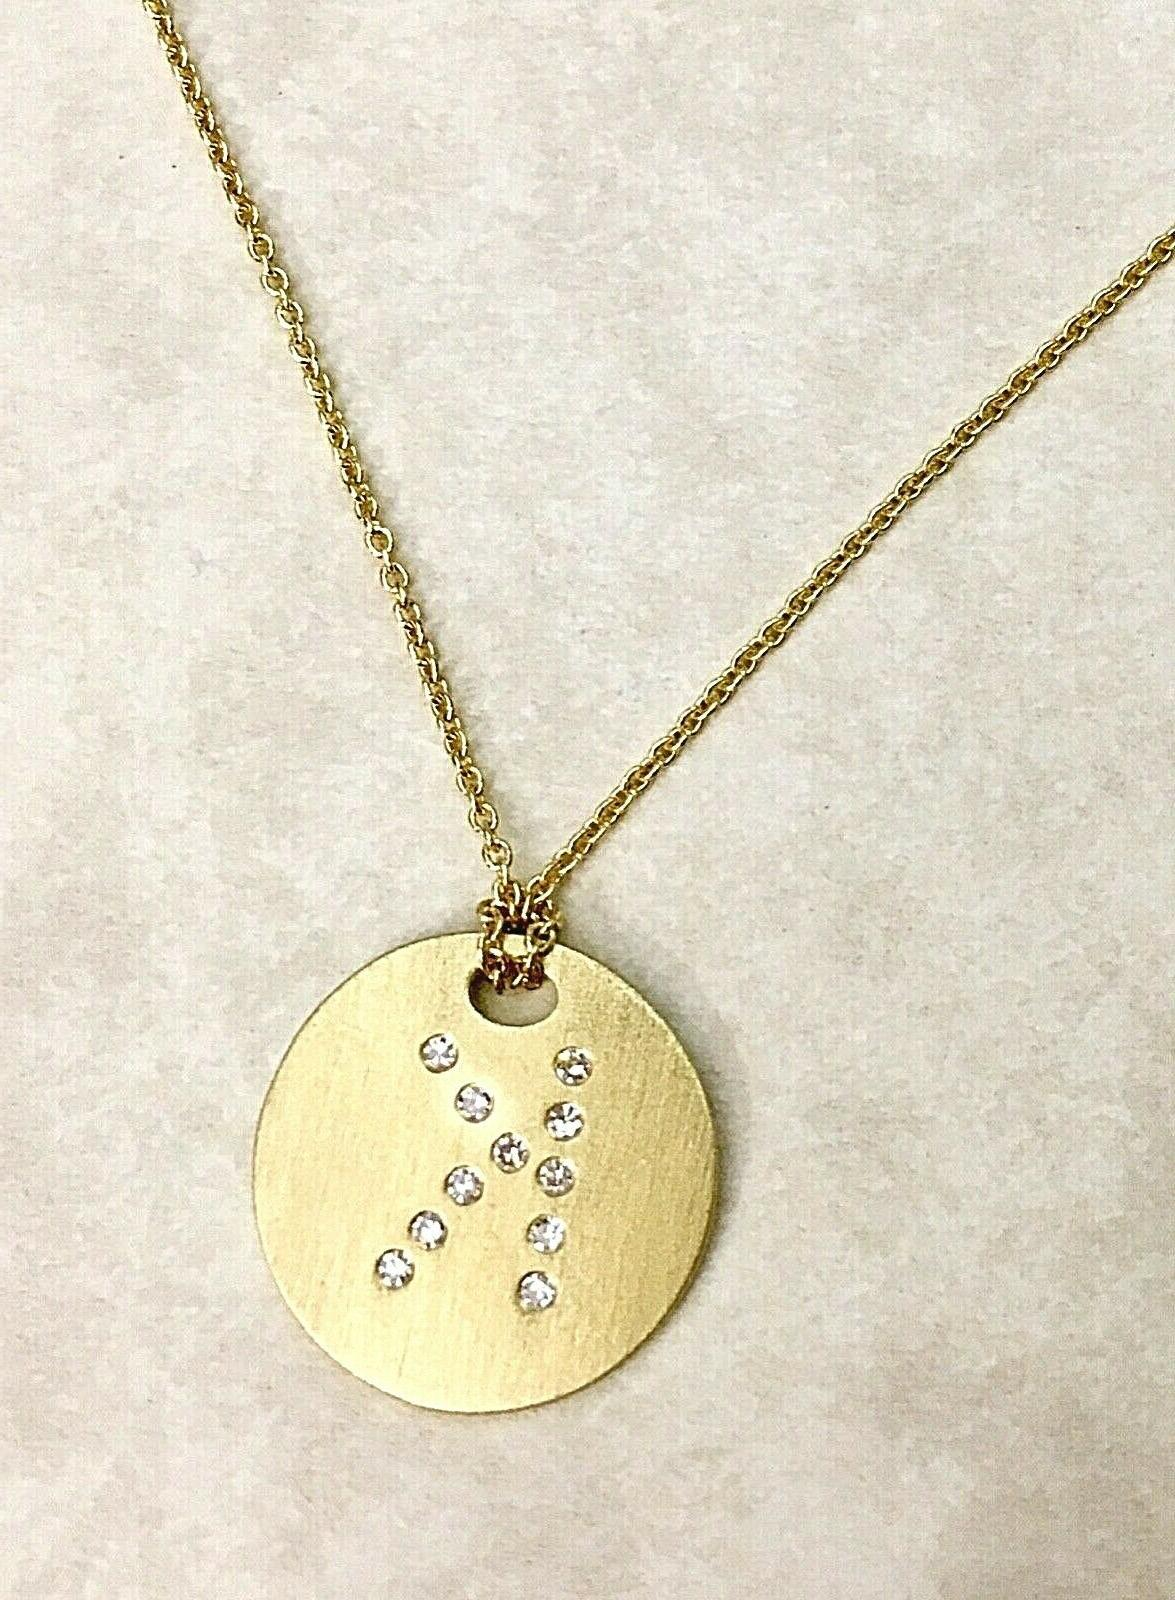 620 tiny treasures disc initial k necklace